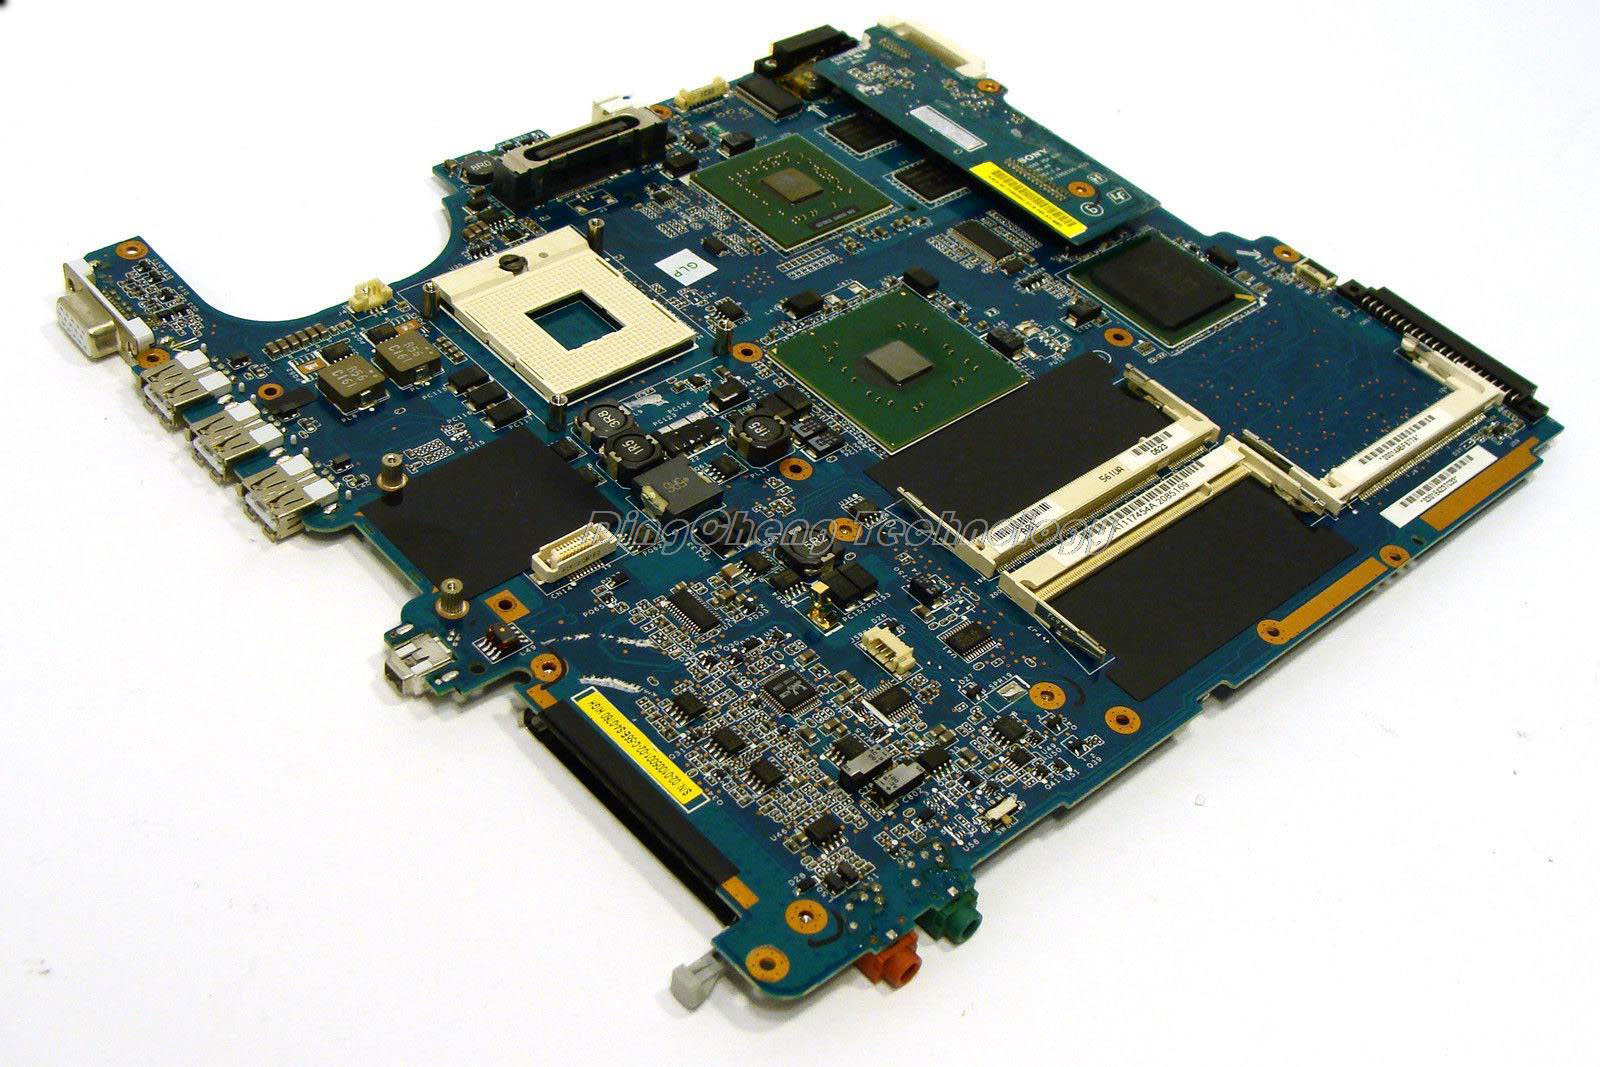 SHELI MBX 130 laptop Motherboard For Sony MBX-130 MS02-M/B A1117454A 1P-0053100-8011 non-integrated graphics card mbx 265 for sony svt13 motherboard with cpu i3 3217u 2gb memory pc motherboard professional wholesale 100